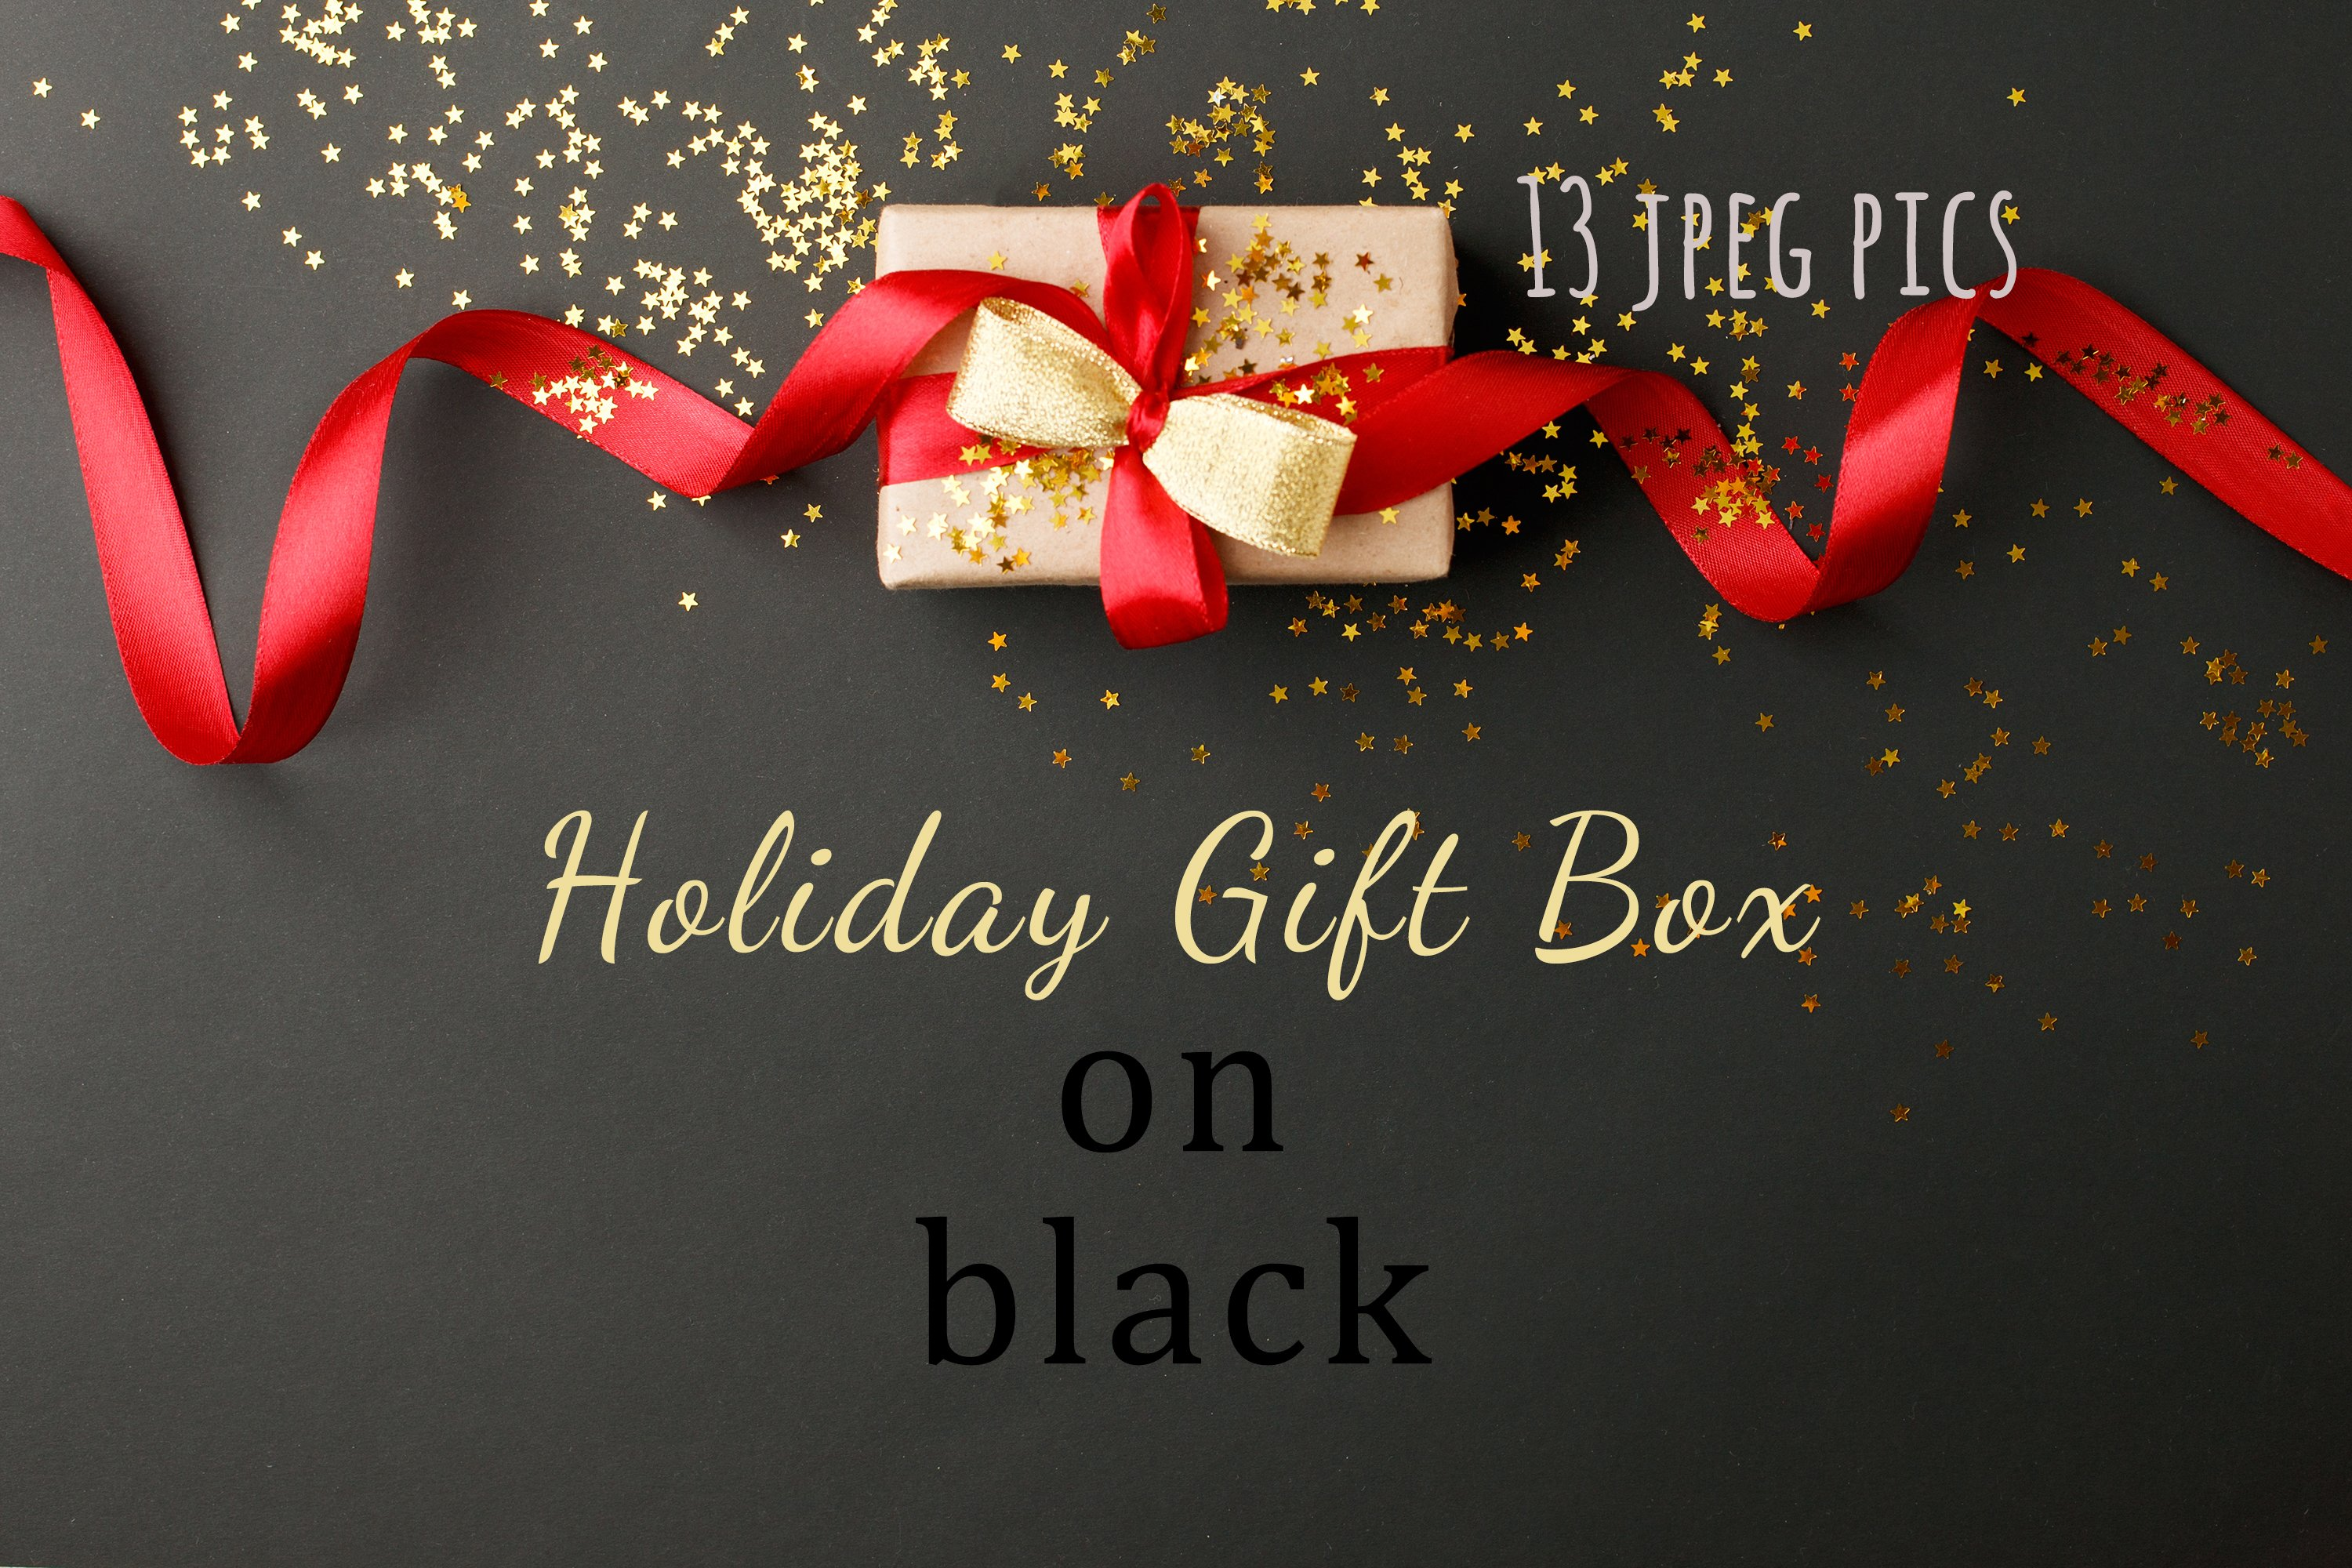 Gift box with bow and gold stars confetti on black table example image 1